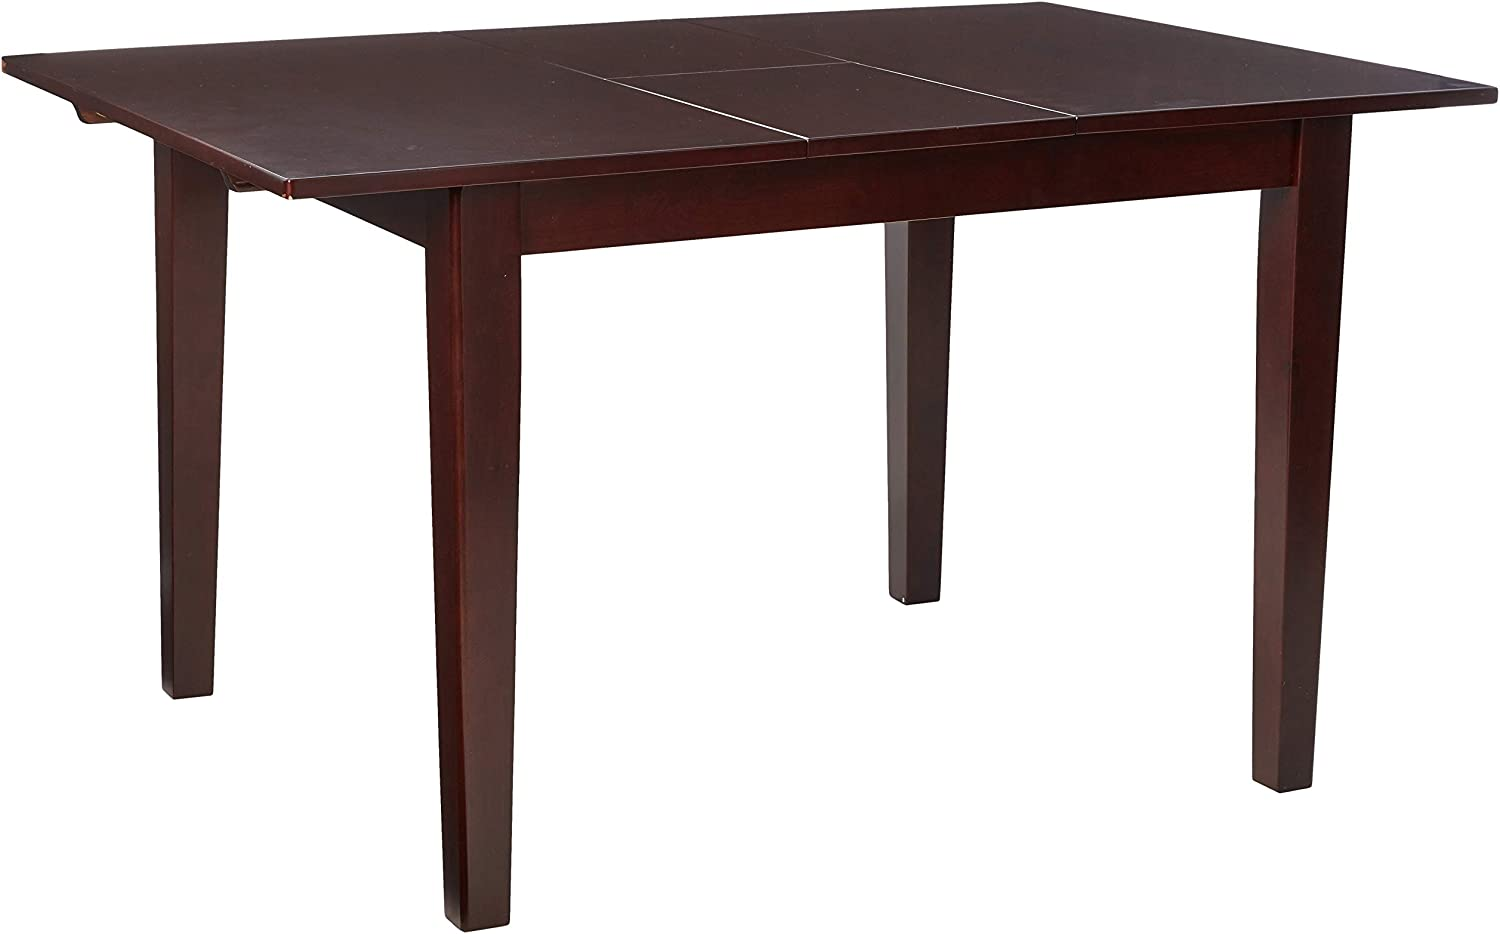 East West Furniture Butterfly Leaf Milan Dining Table Mahogany Finish Stylish 4 Legs Solid Wood Frame Kitchen Table